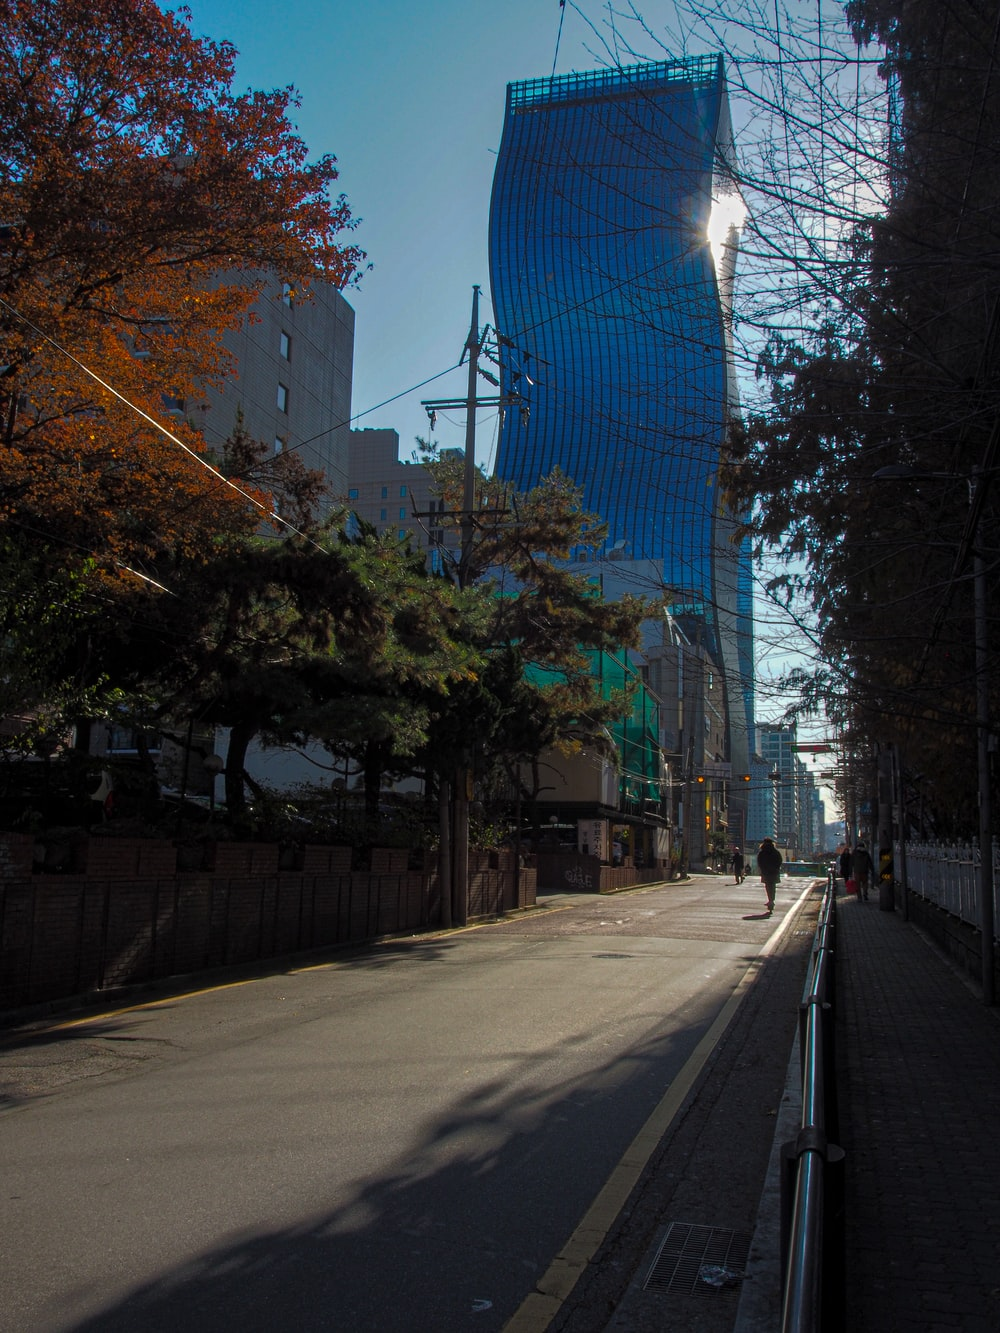 gray concrete road between trees and buildings during daytime